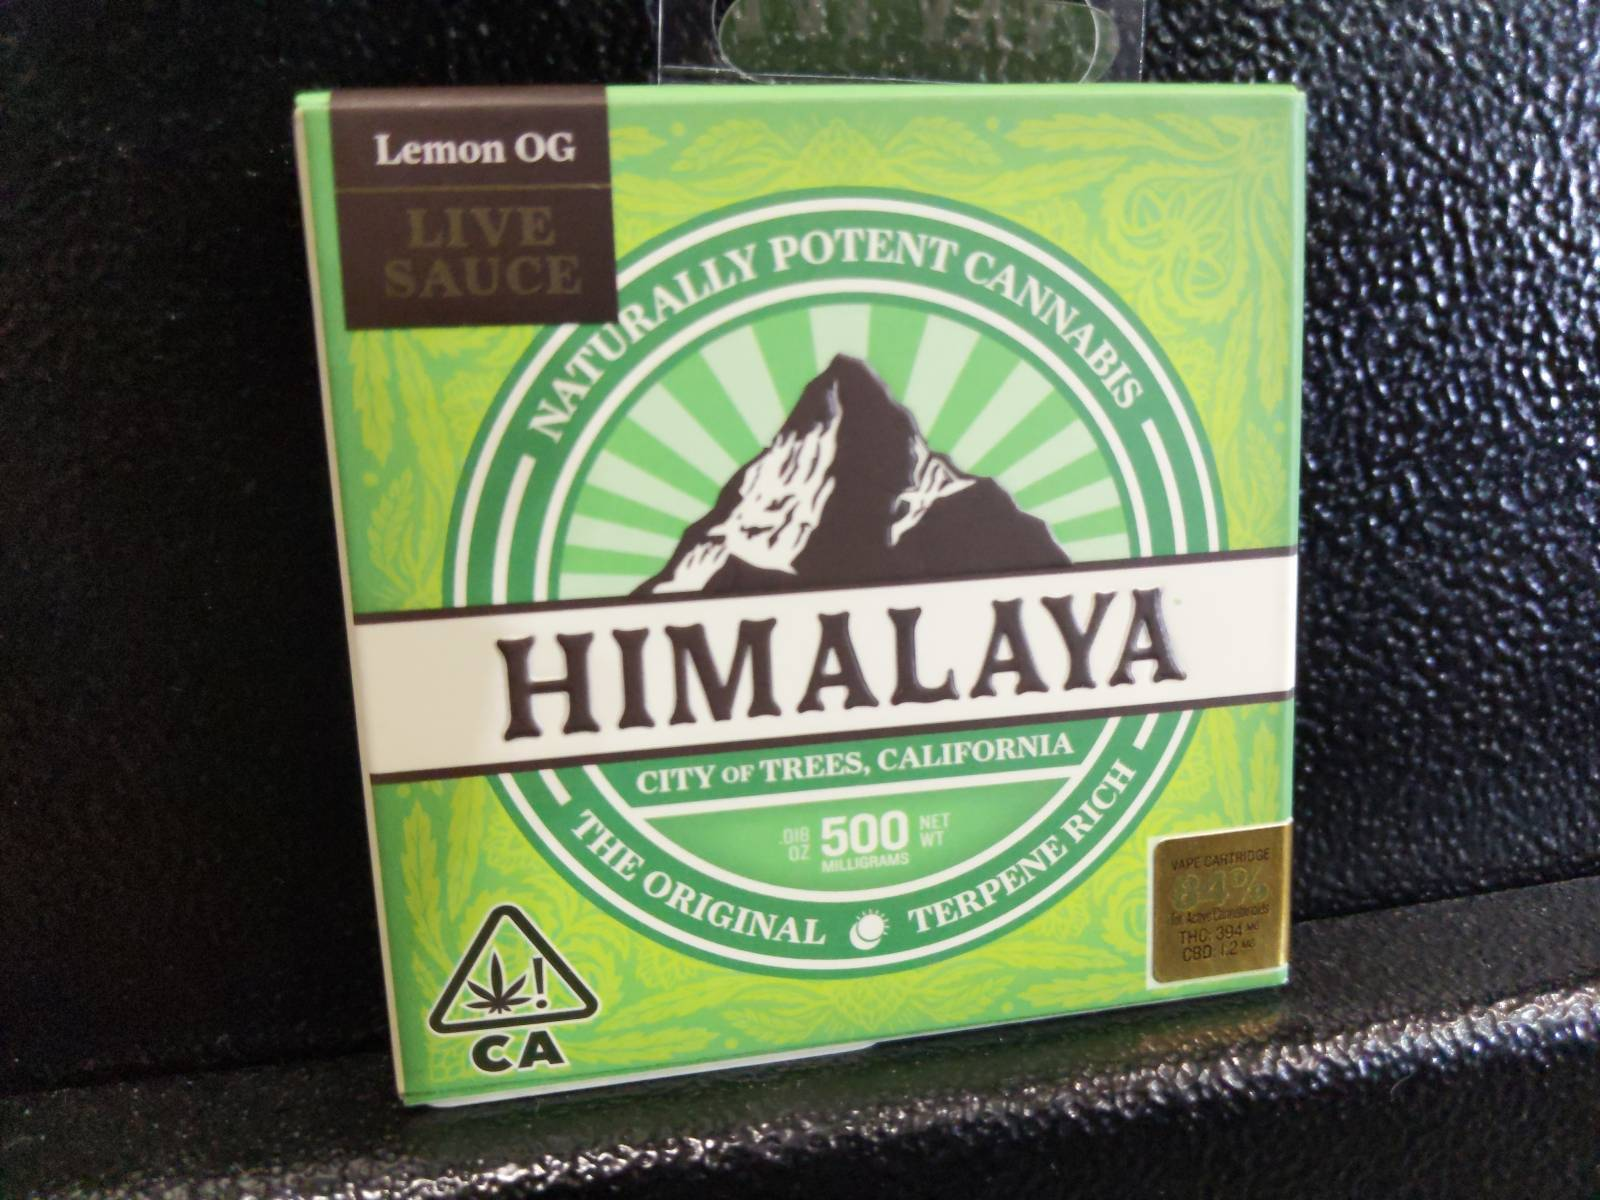 Himalaya .5g Cartridge:Hybrid (Live Sauce)- Lemon OG